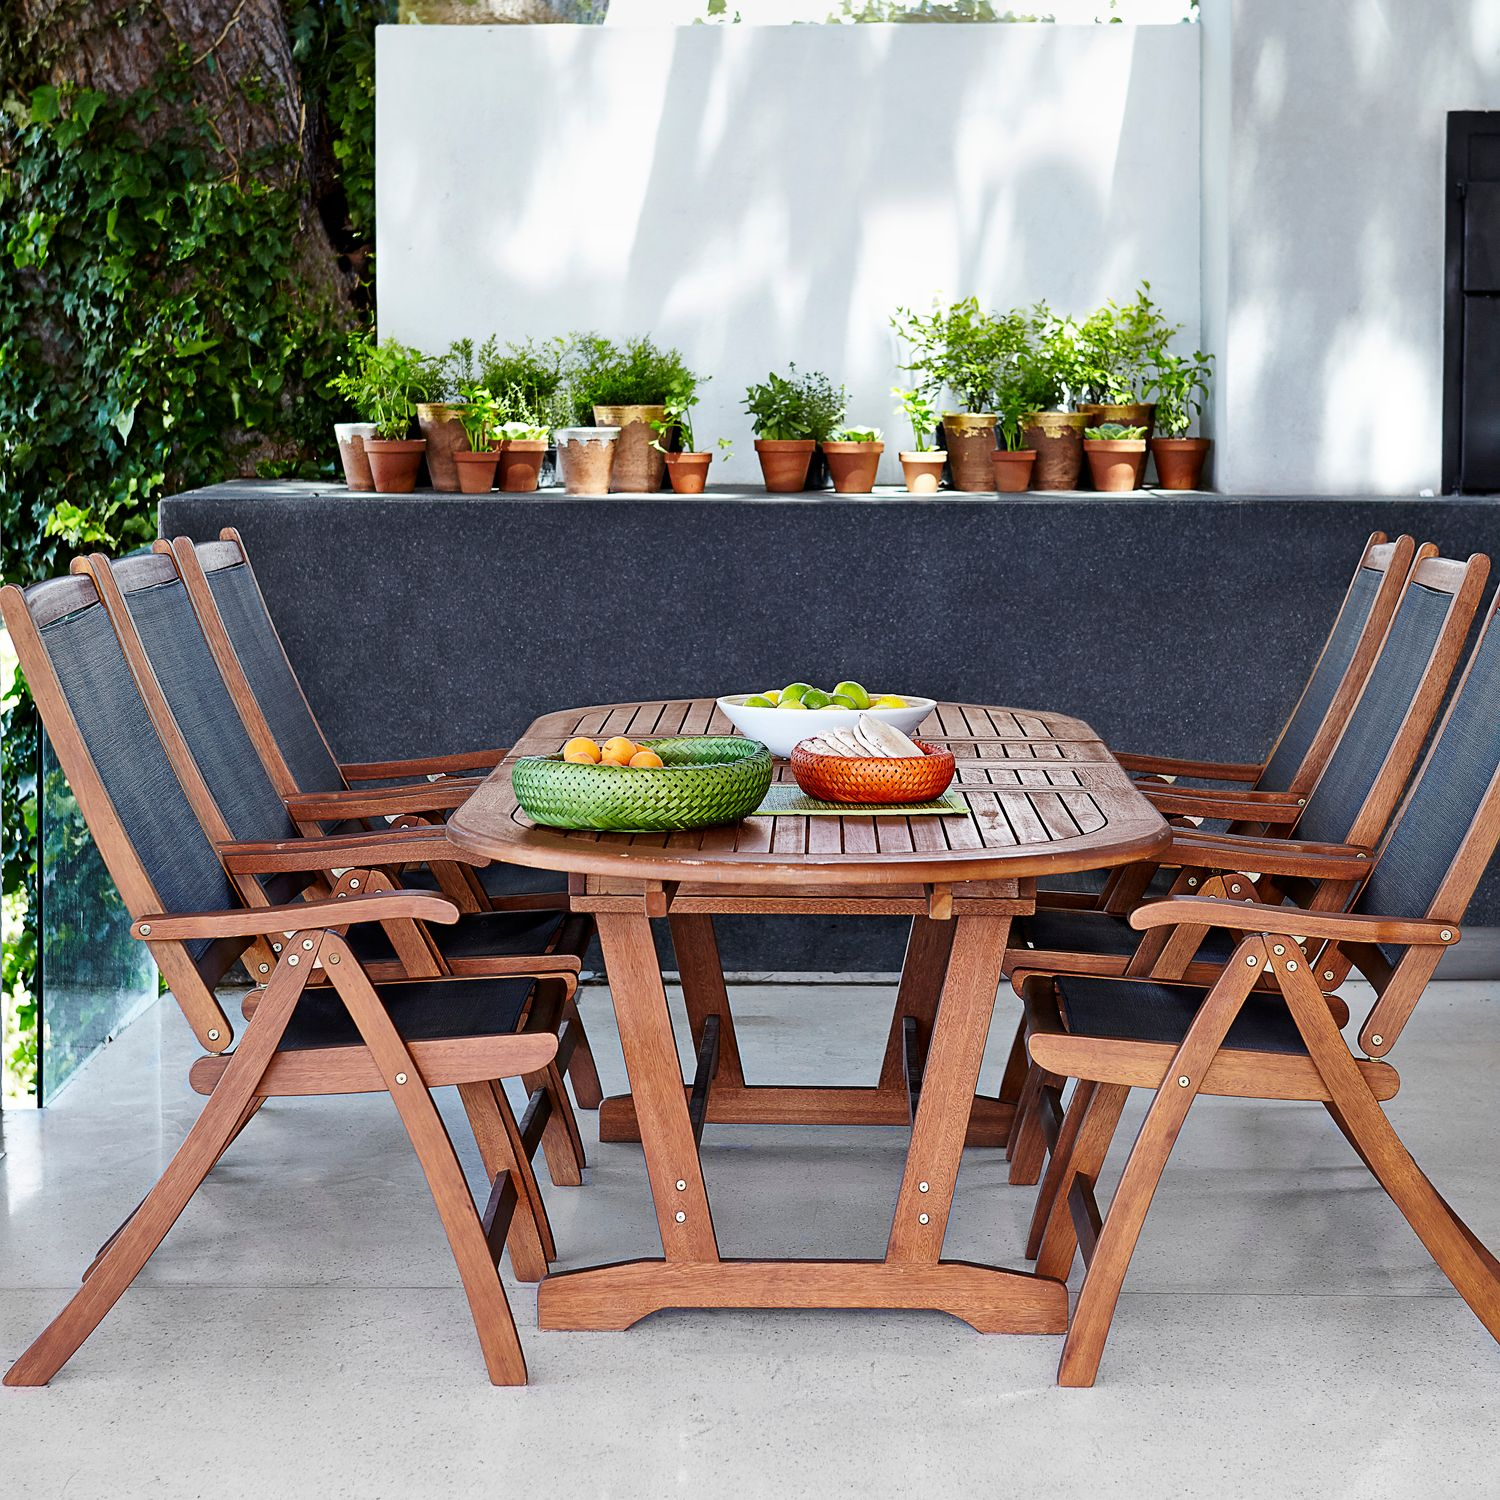 John Lewis Naples Outdoor 6-10 Seater Extending Dining Table